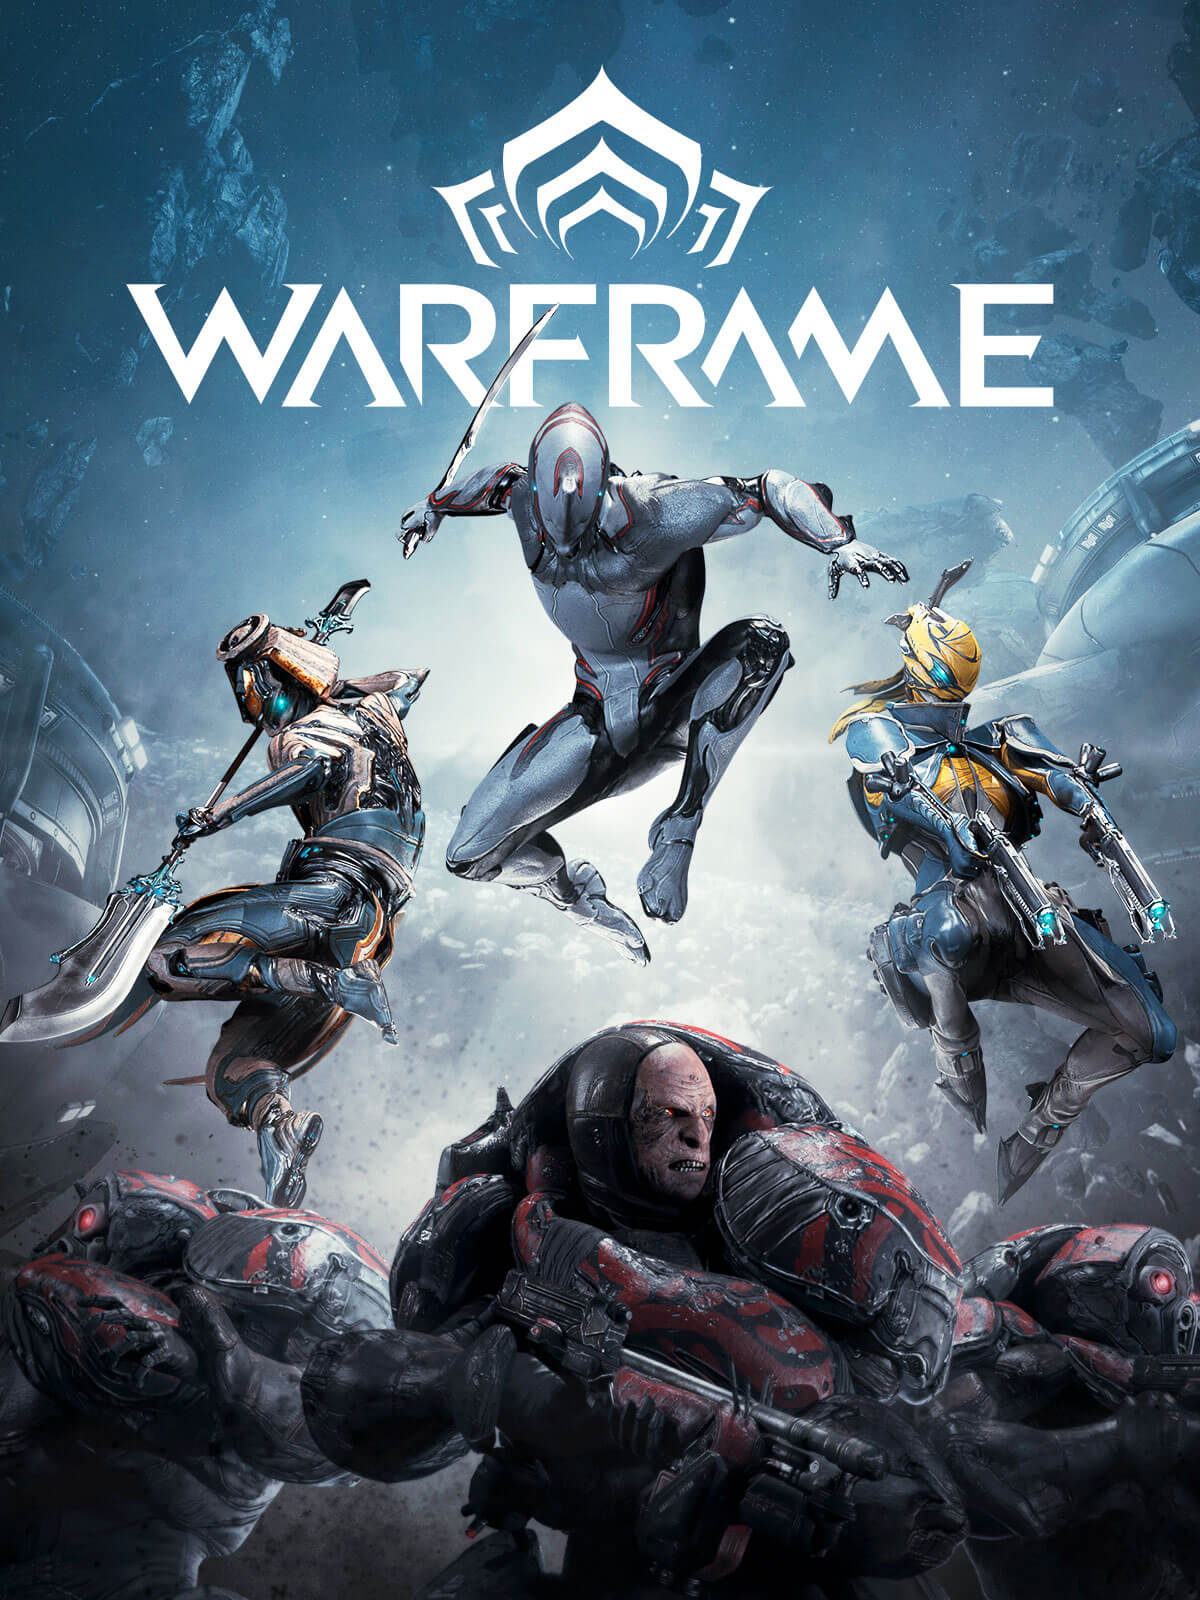 Warframe | Download and Play for Free - Epic Games Store